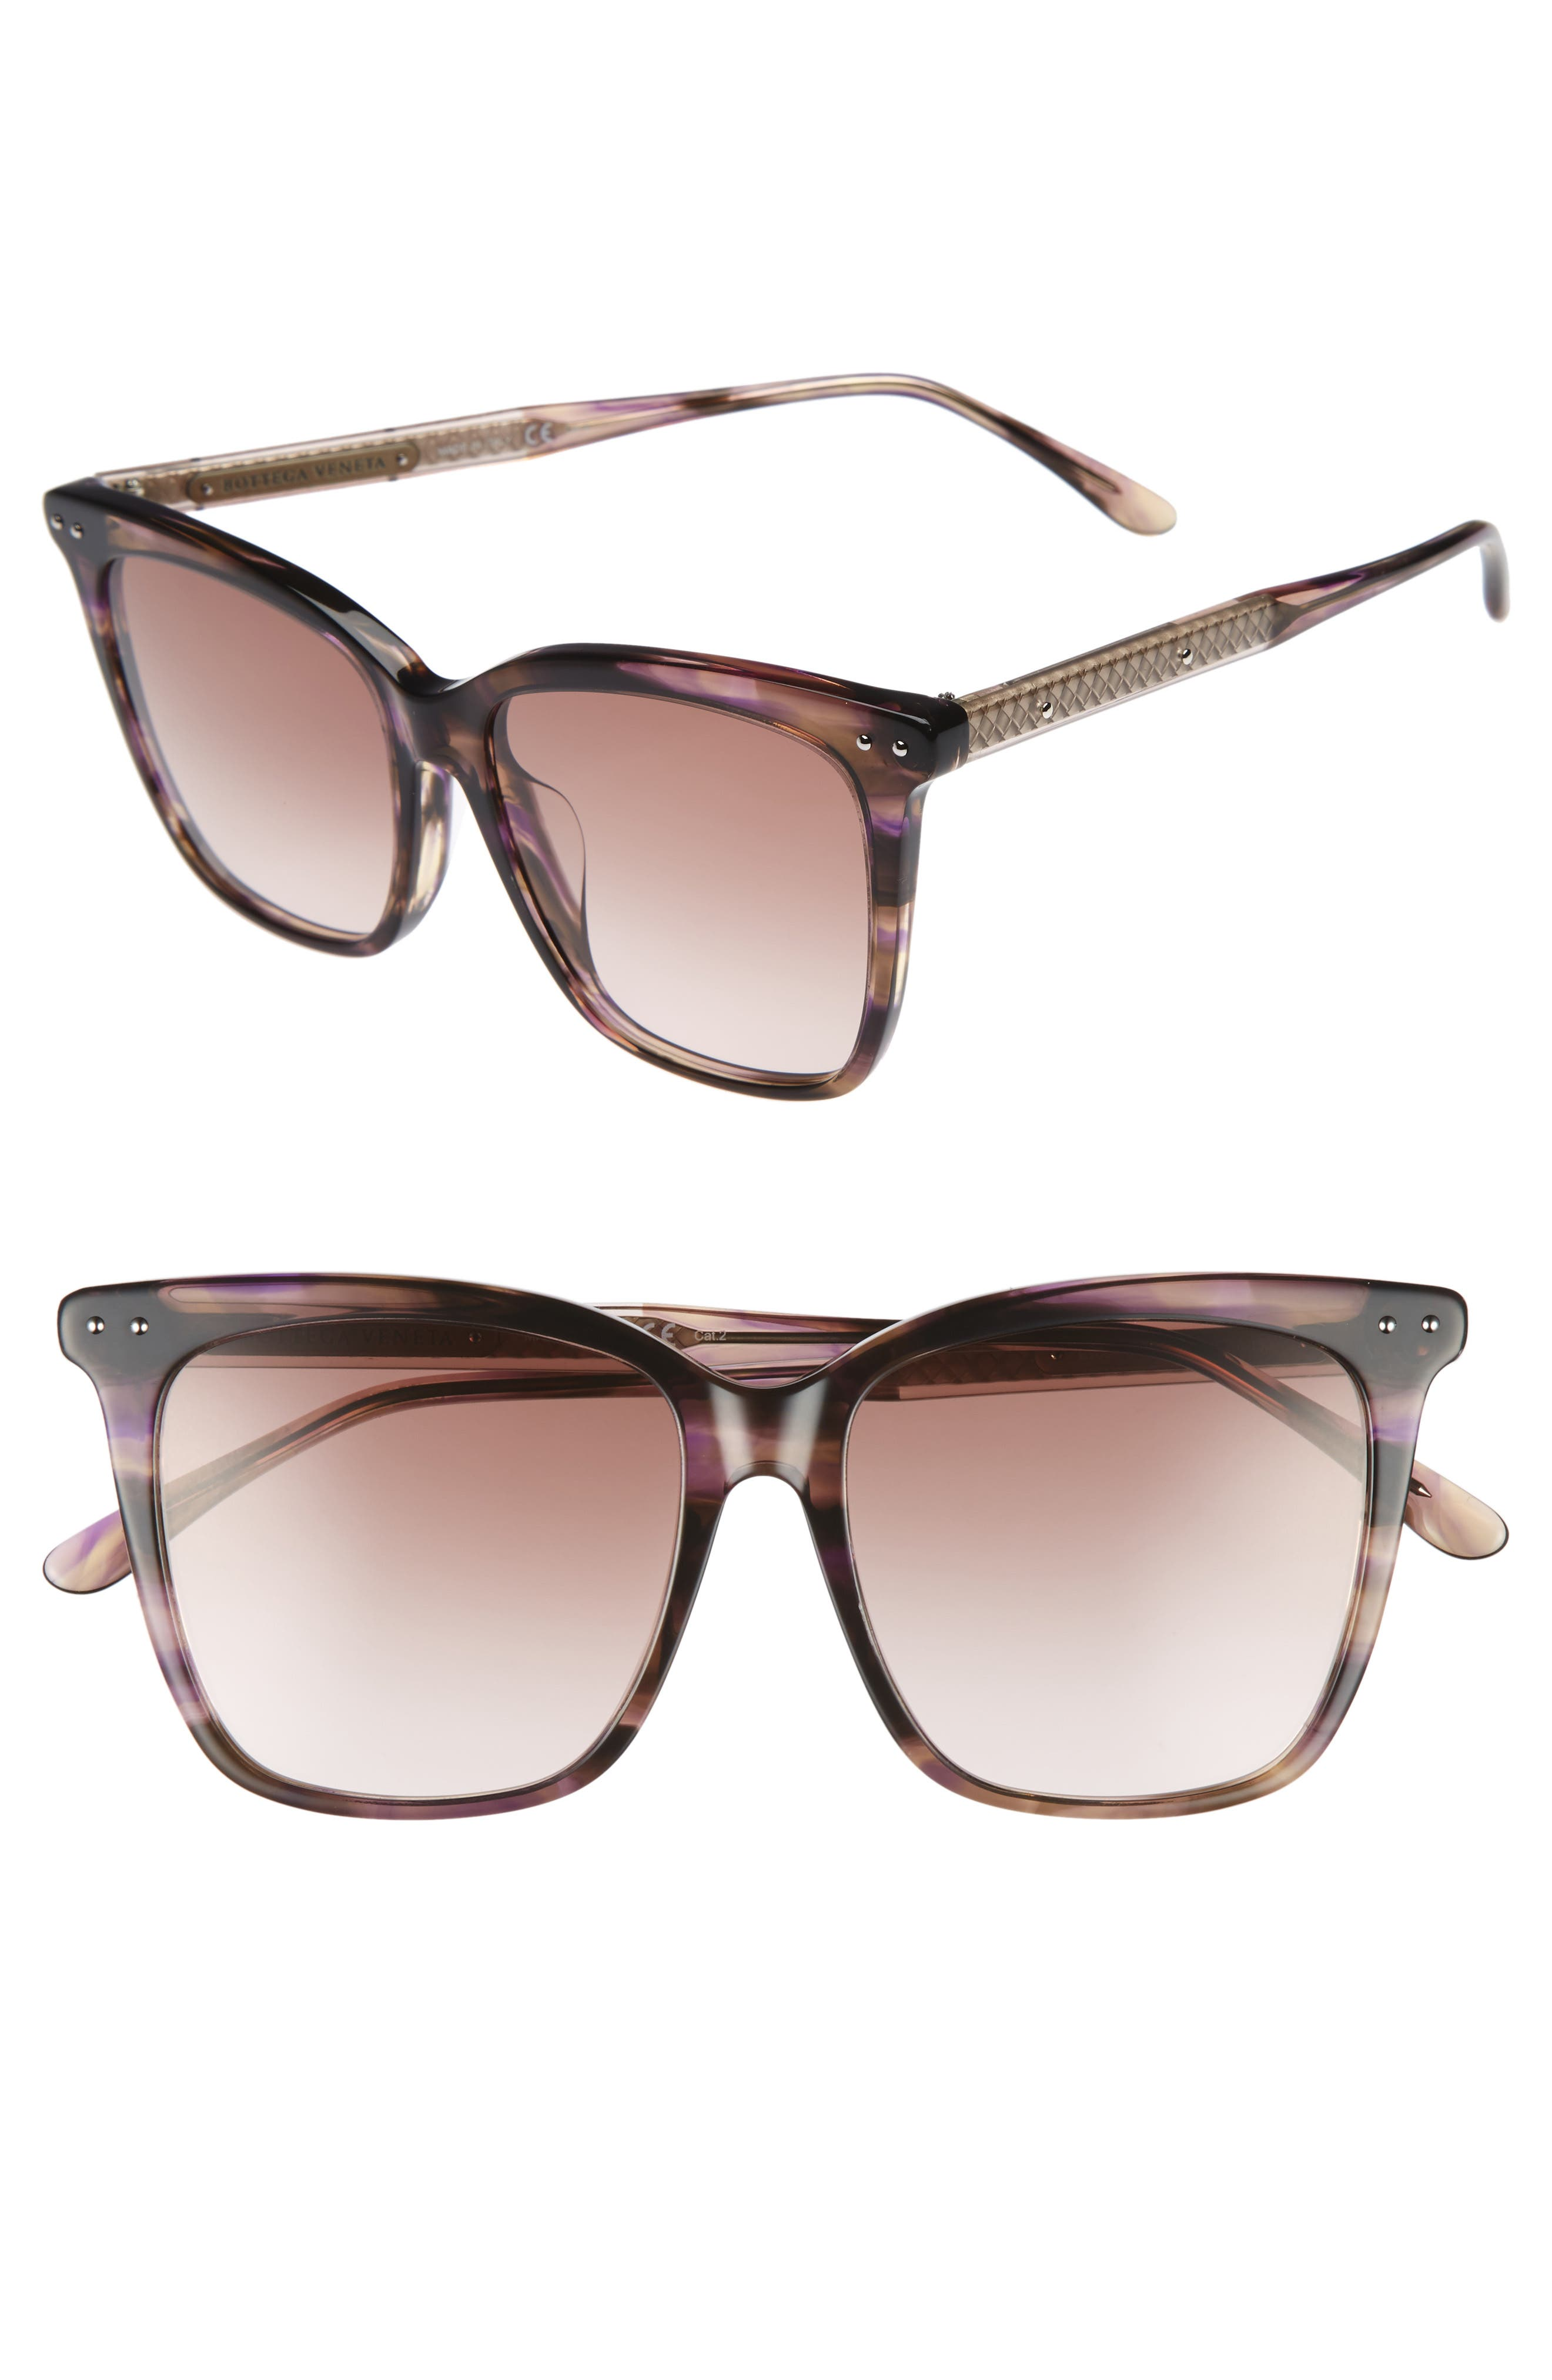 Bottega Veneta 54mm Square Sunglasses